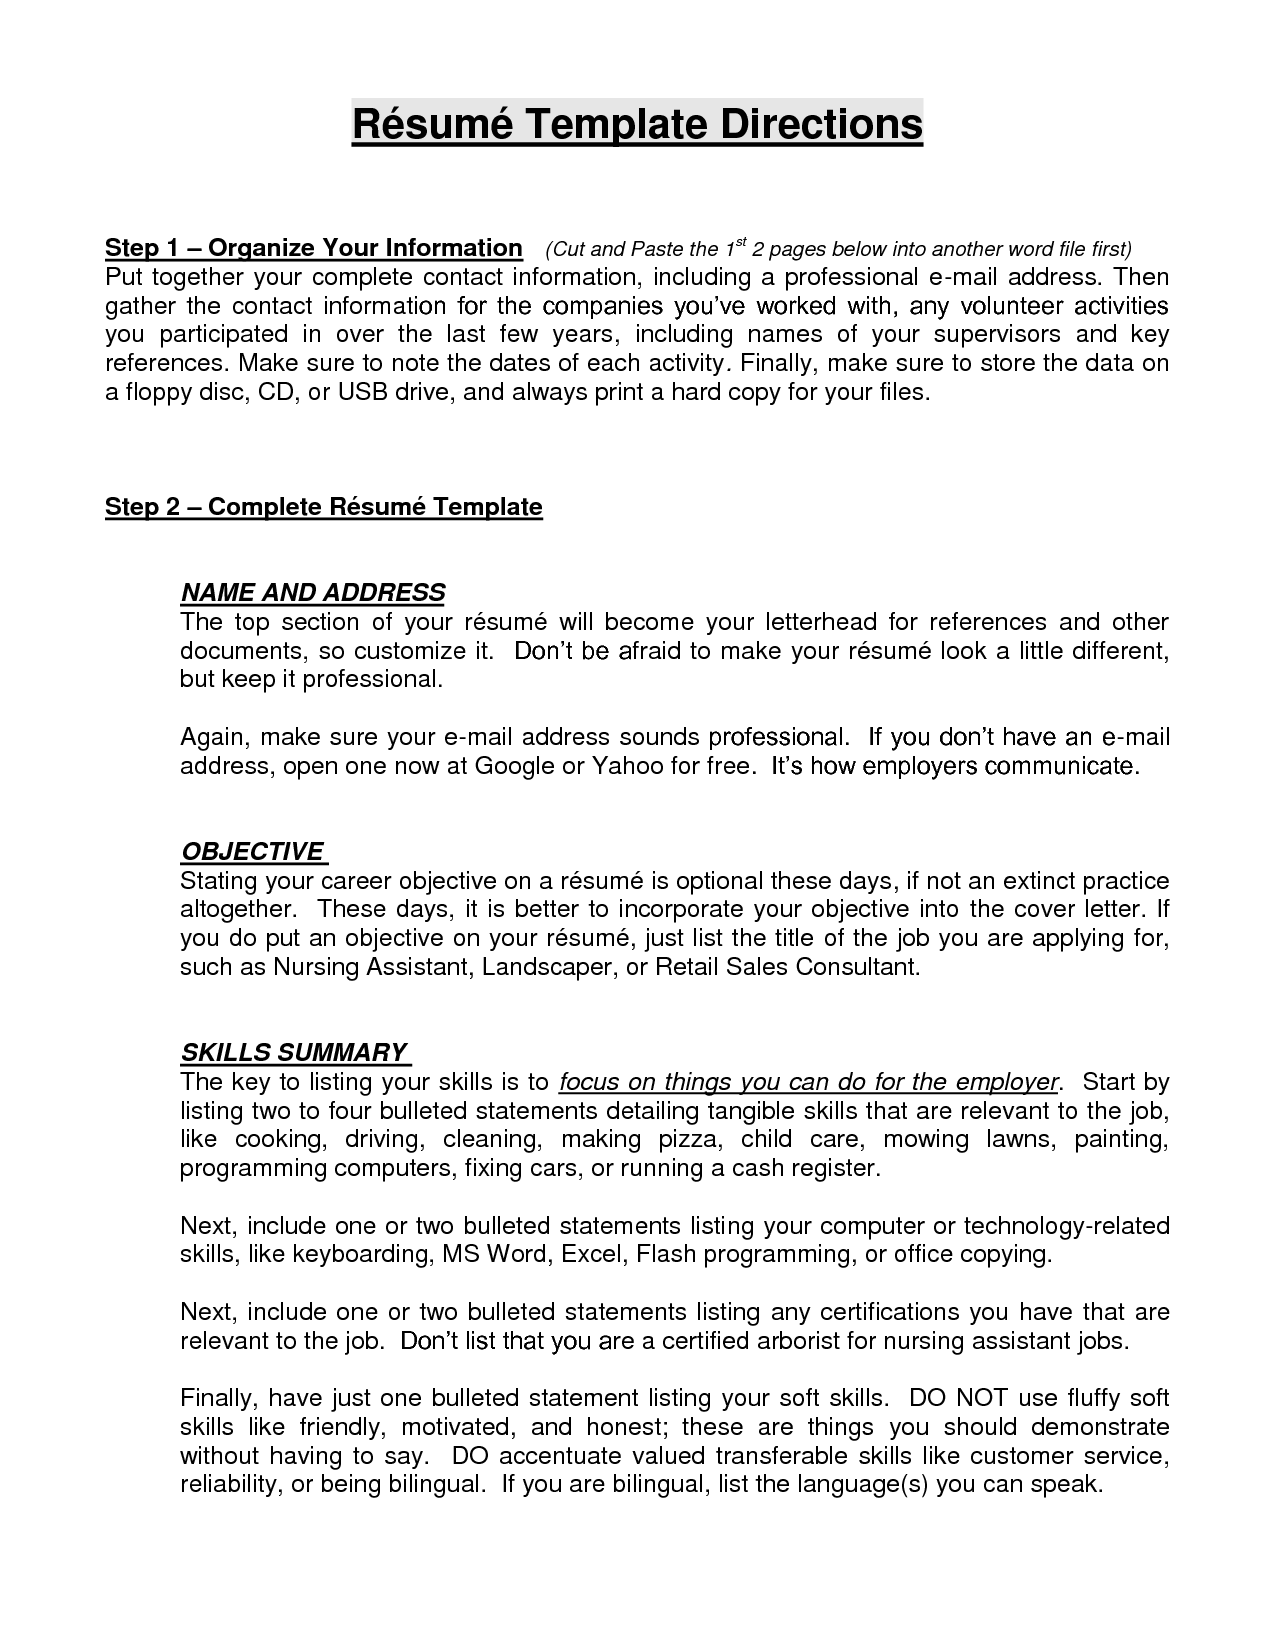 10 Sample Resume Objective Statements  SampleBusinessResume.com : SampleBusinessResume.com